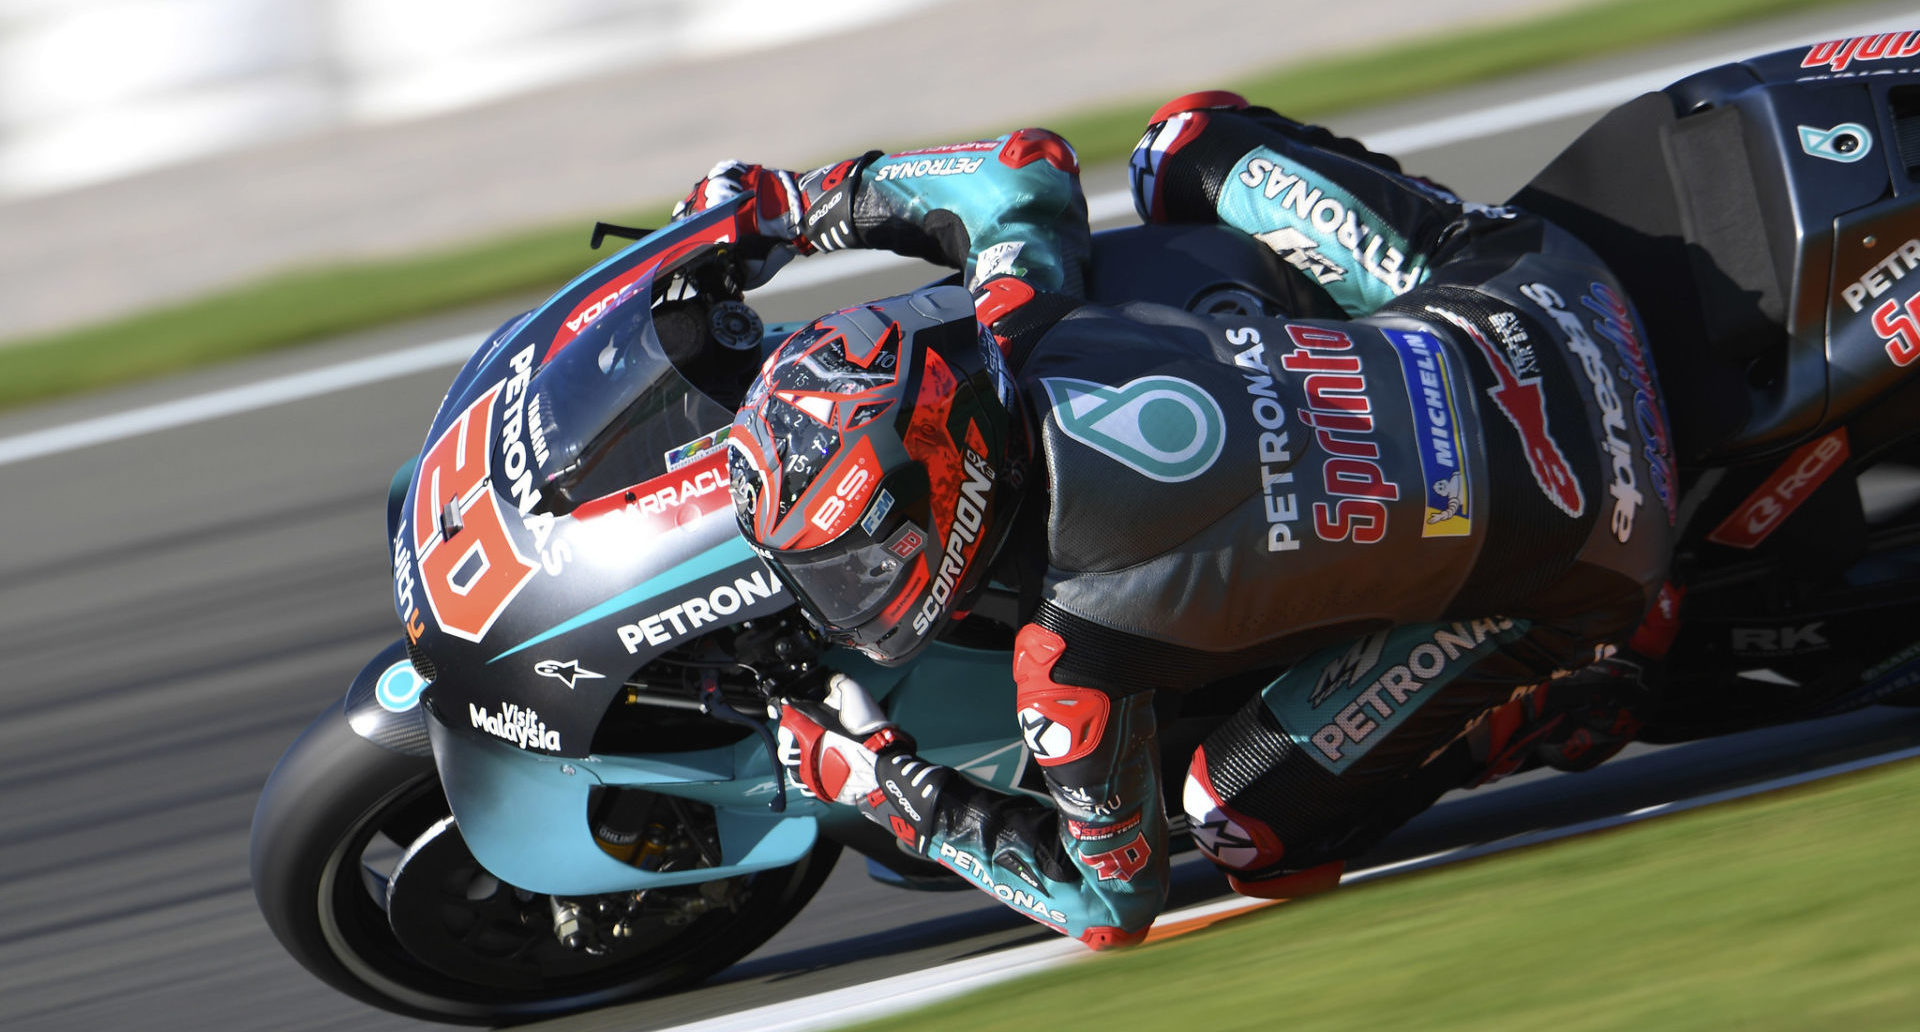 Fabio Quartararo (20) at speed at Valencia. Photo courtesy of PETRONAS Yamaha SRT.